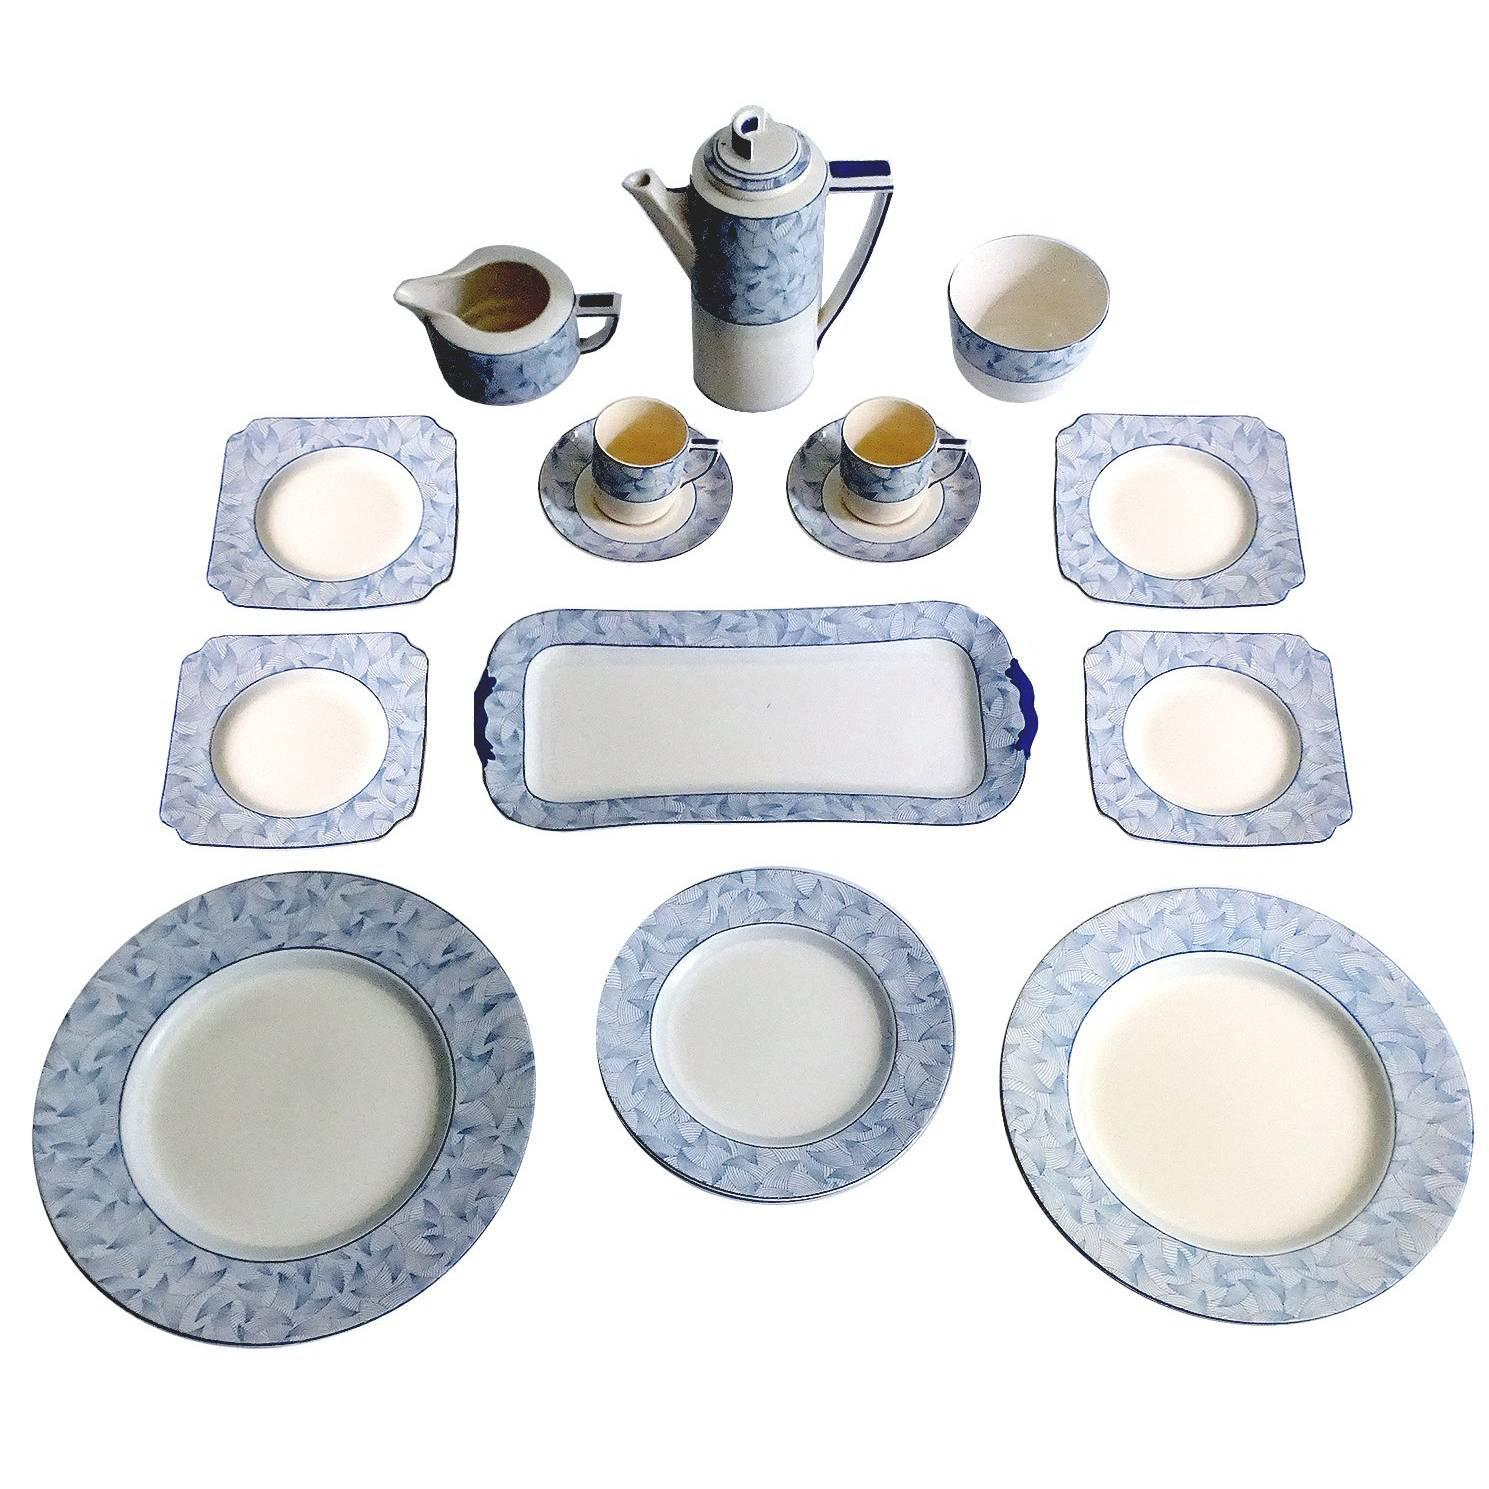 18 PCs Royal Doulton Art Deco Service Dinner Dinnerware Modernist Limoges Era For Sale  sc 1 st  1stDibs : art deco dinnerware - pezcame.com